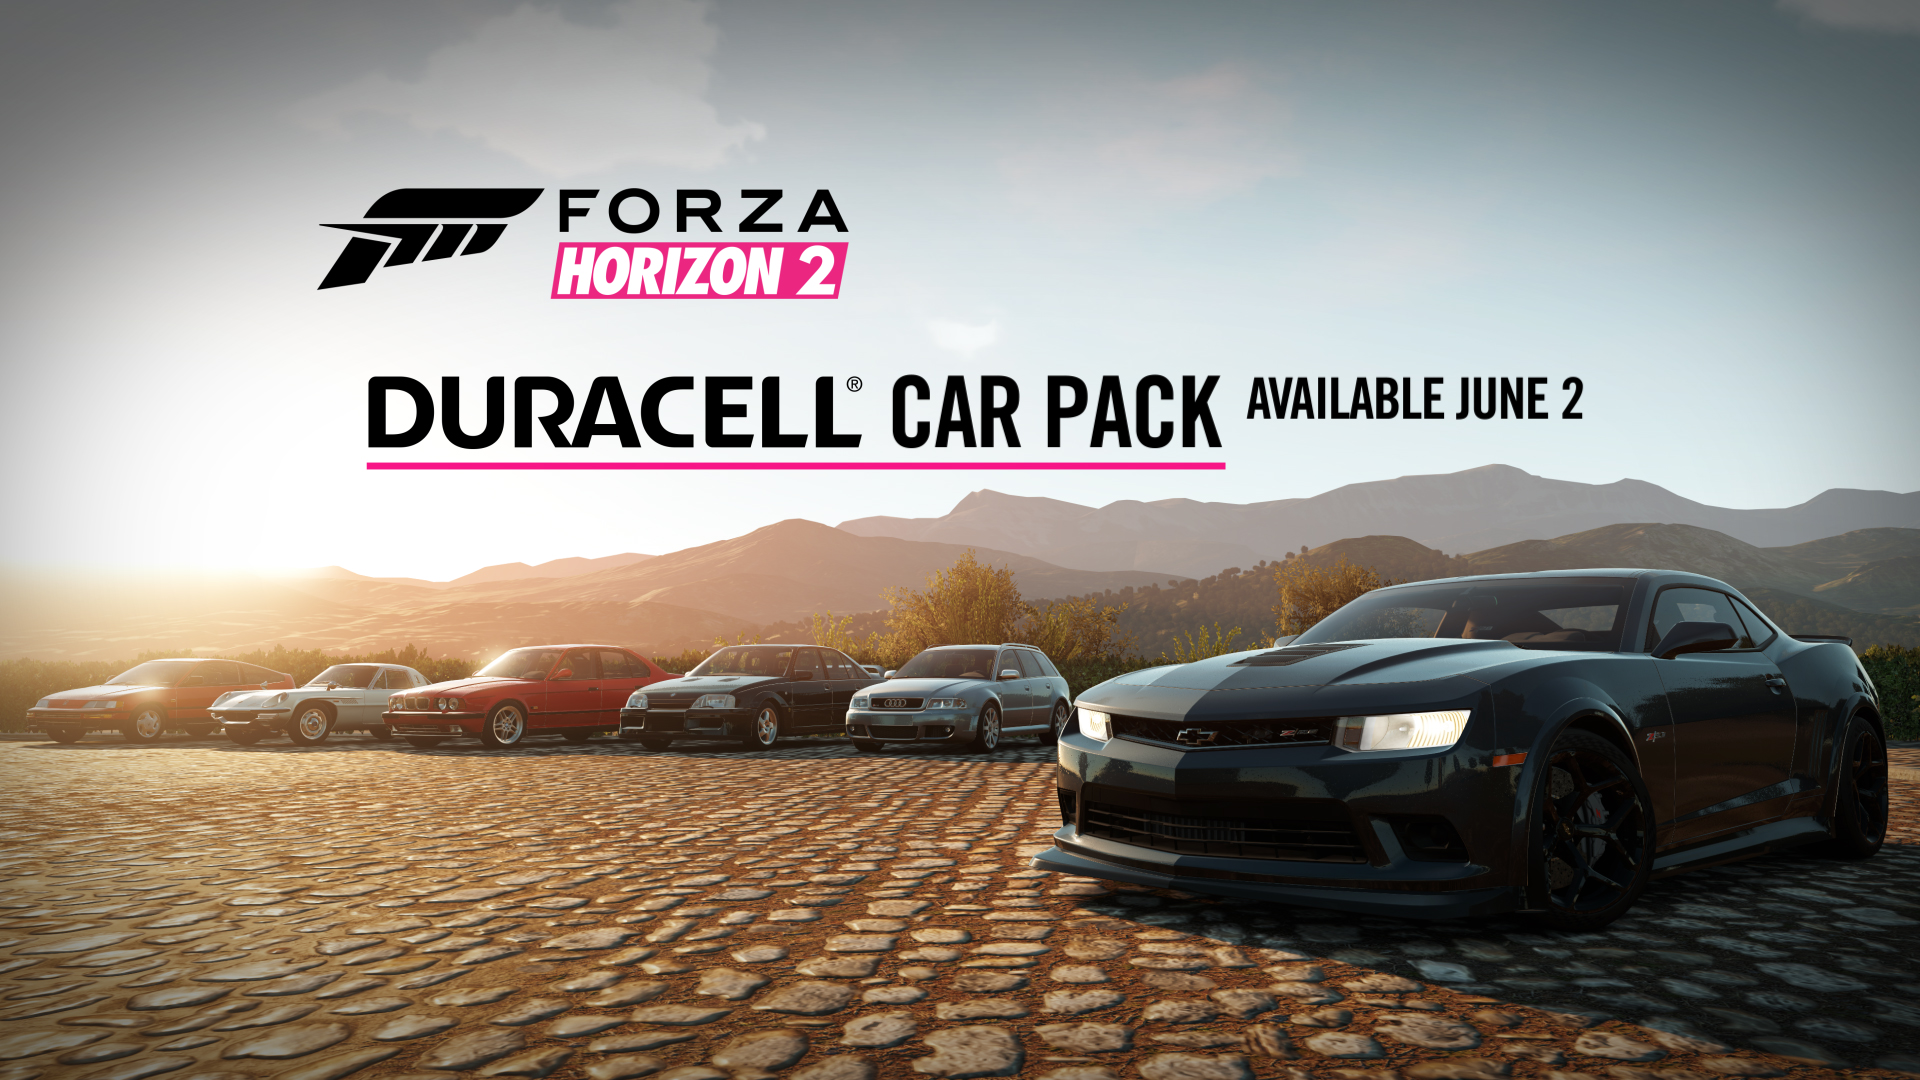 Add A Few New Cars To Your Forza Horizon 2 Garage